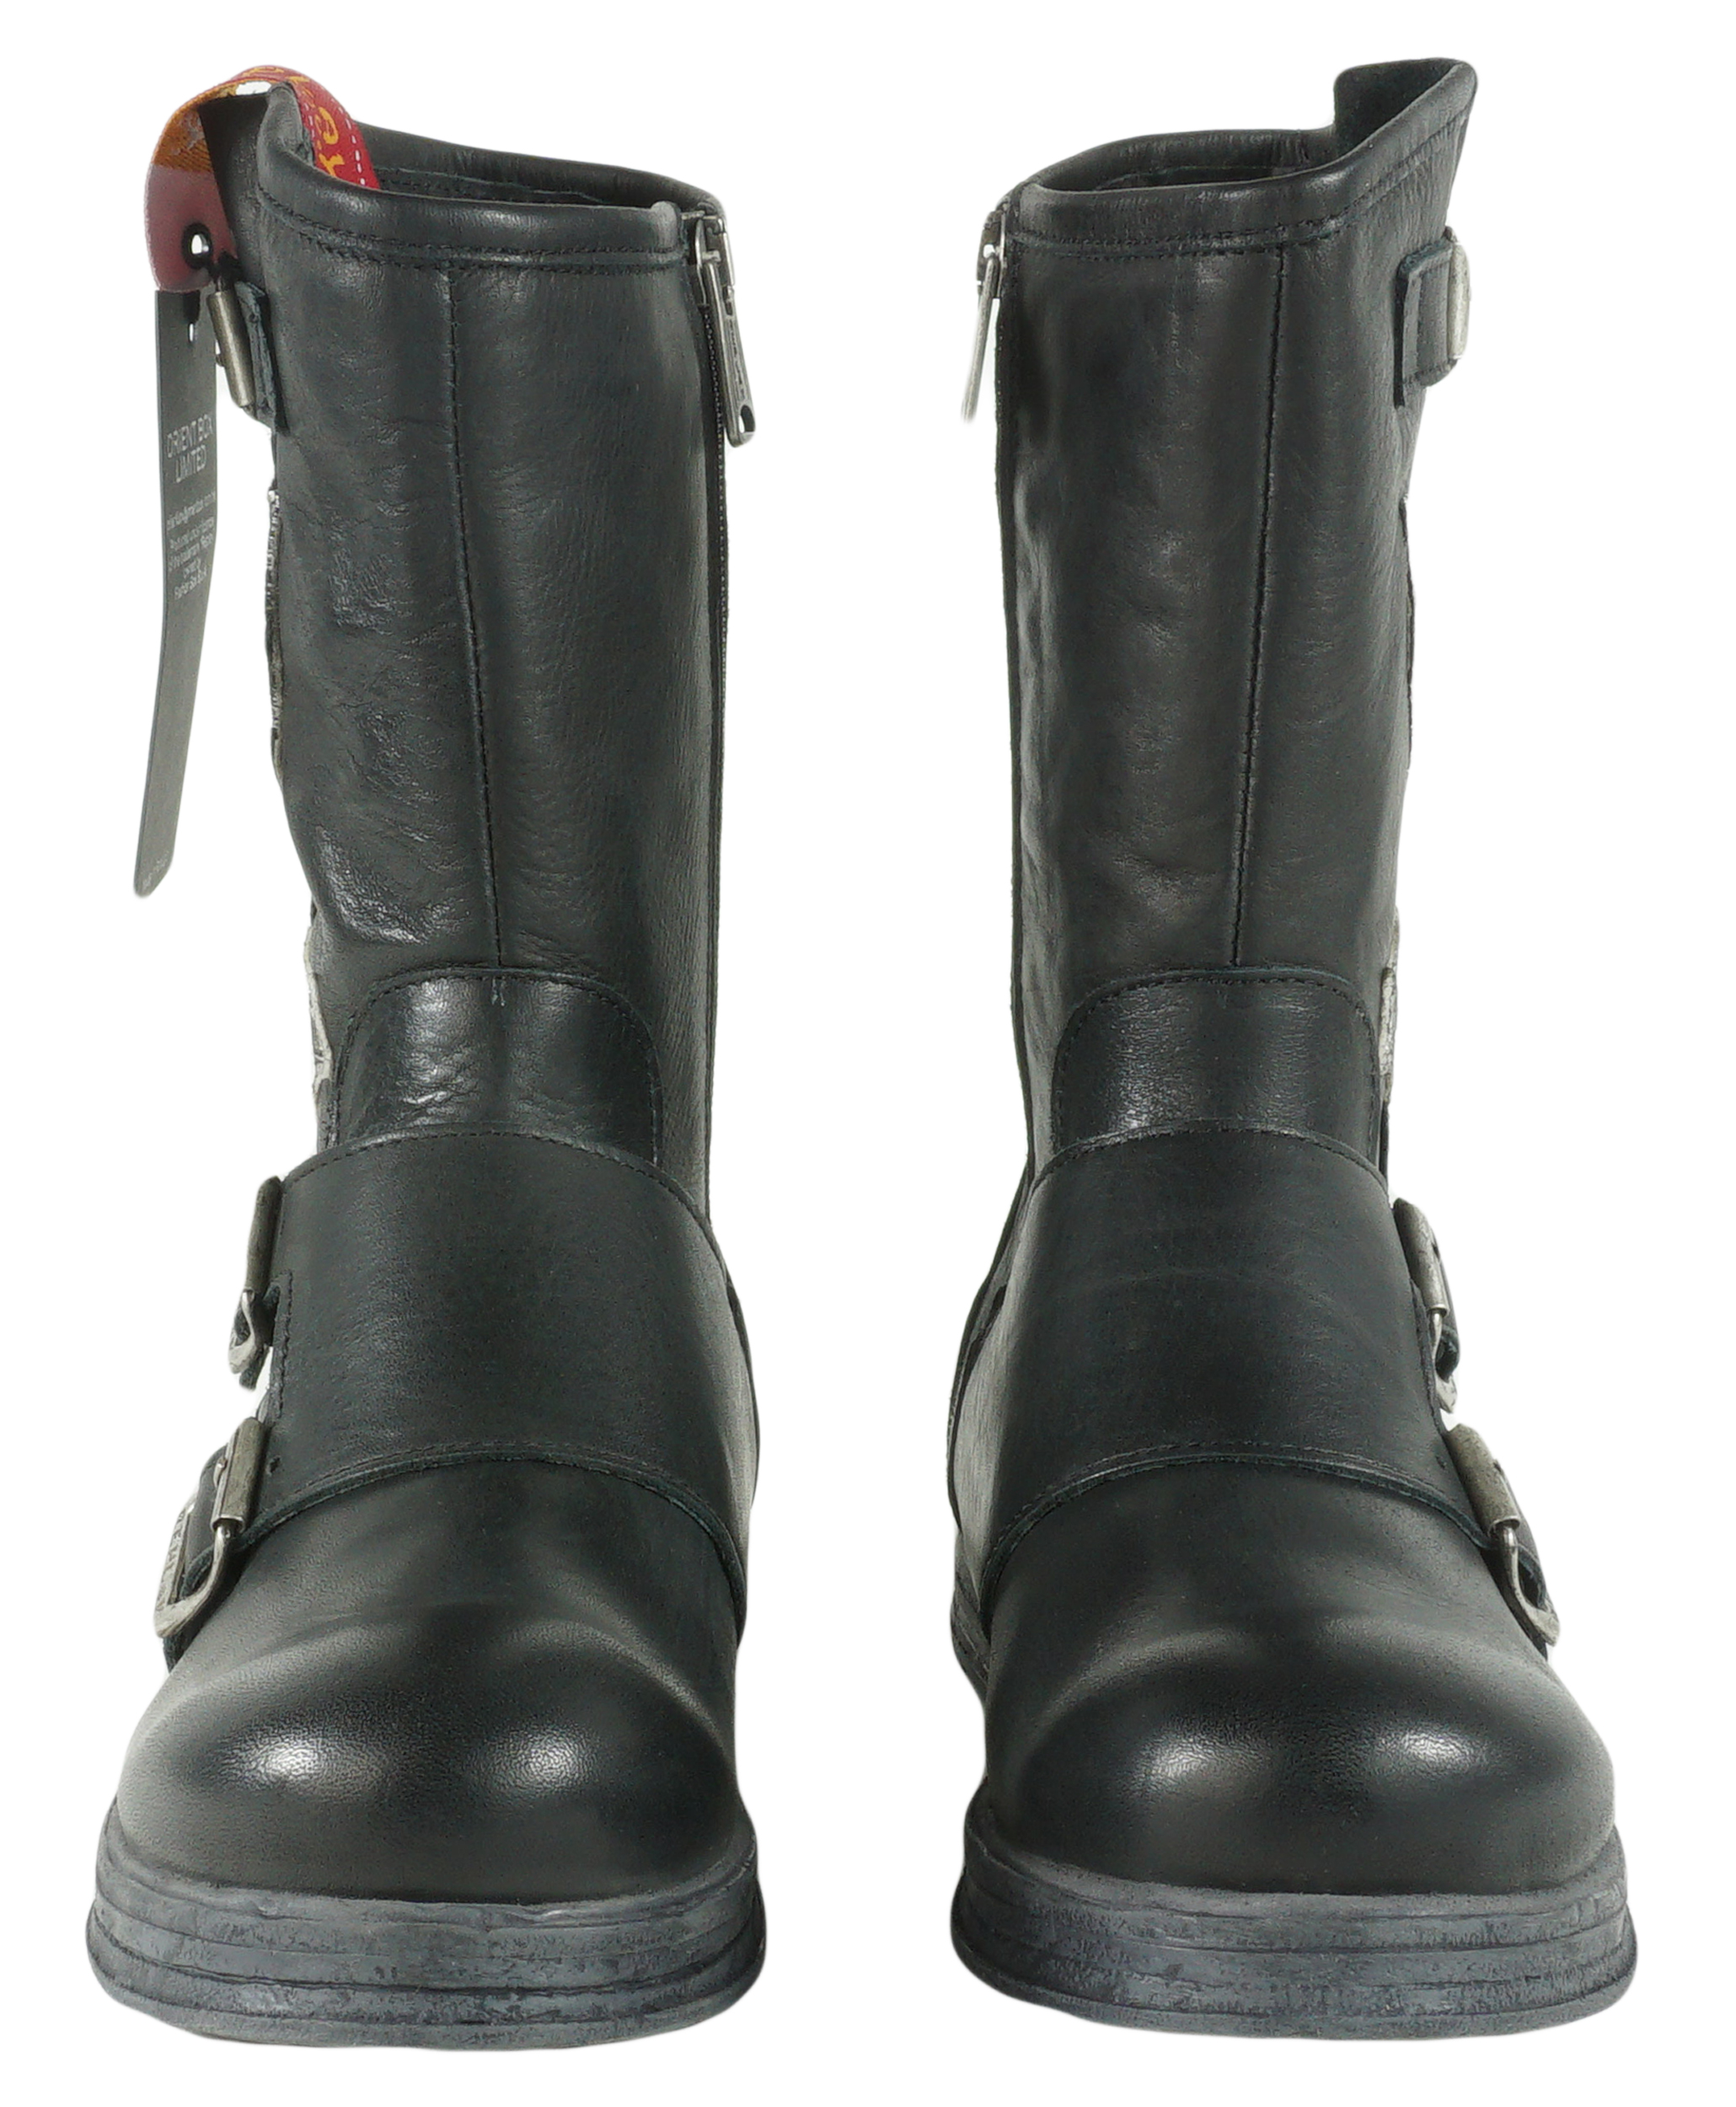 Replay Womens Biker Boots RL260049L Boots Shoes Ankle ...